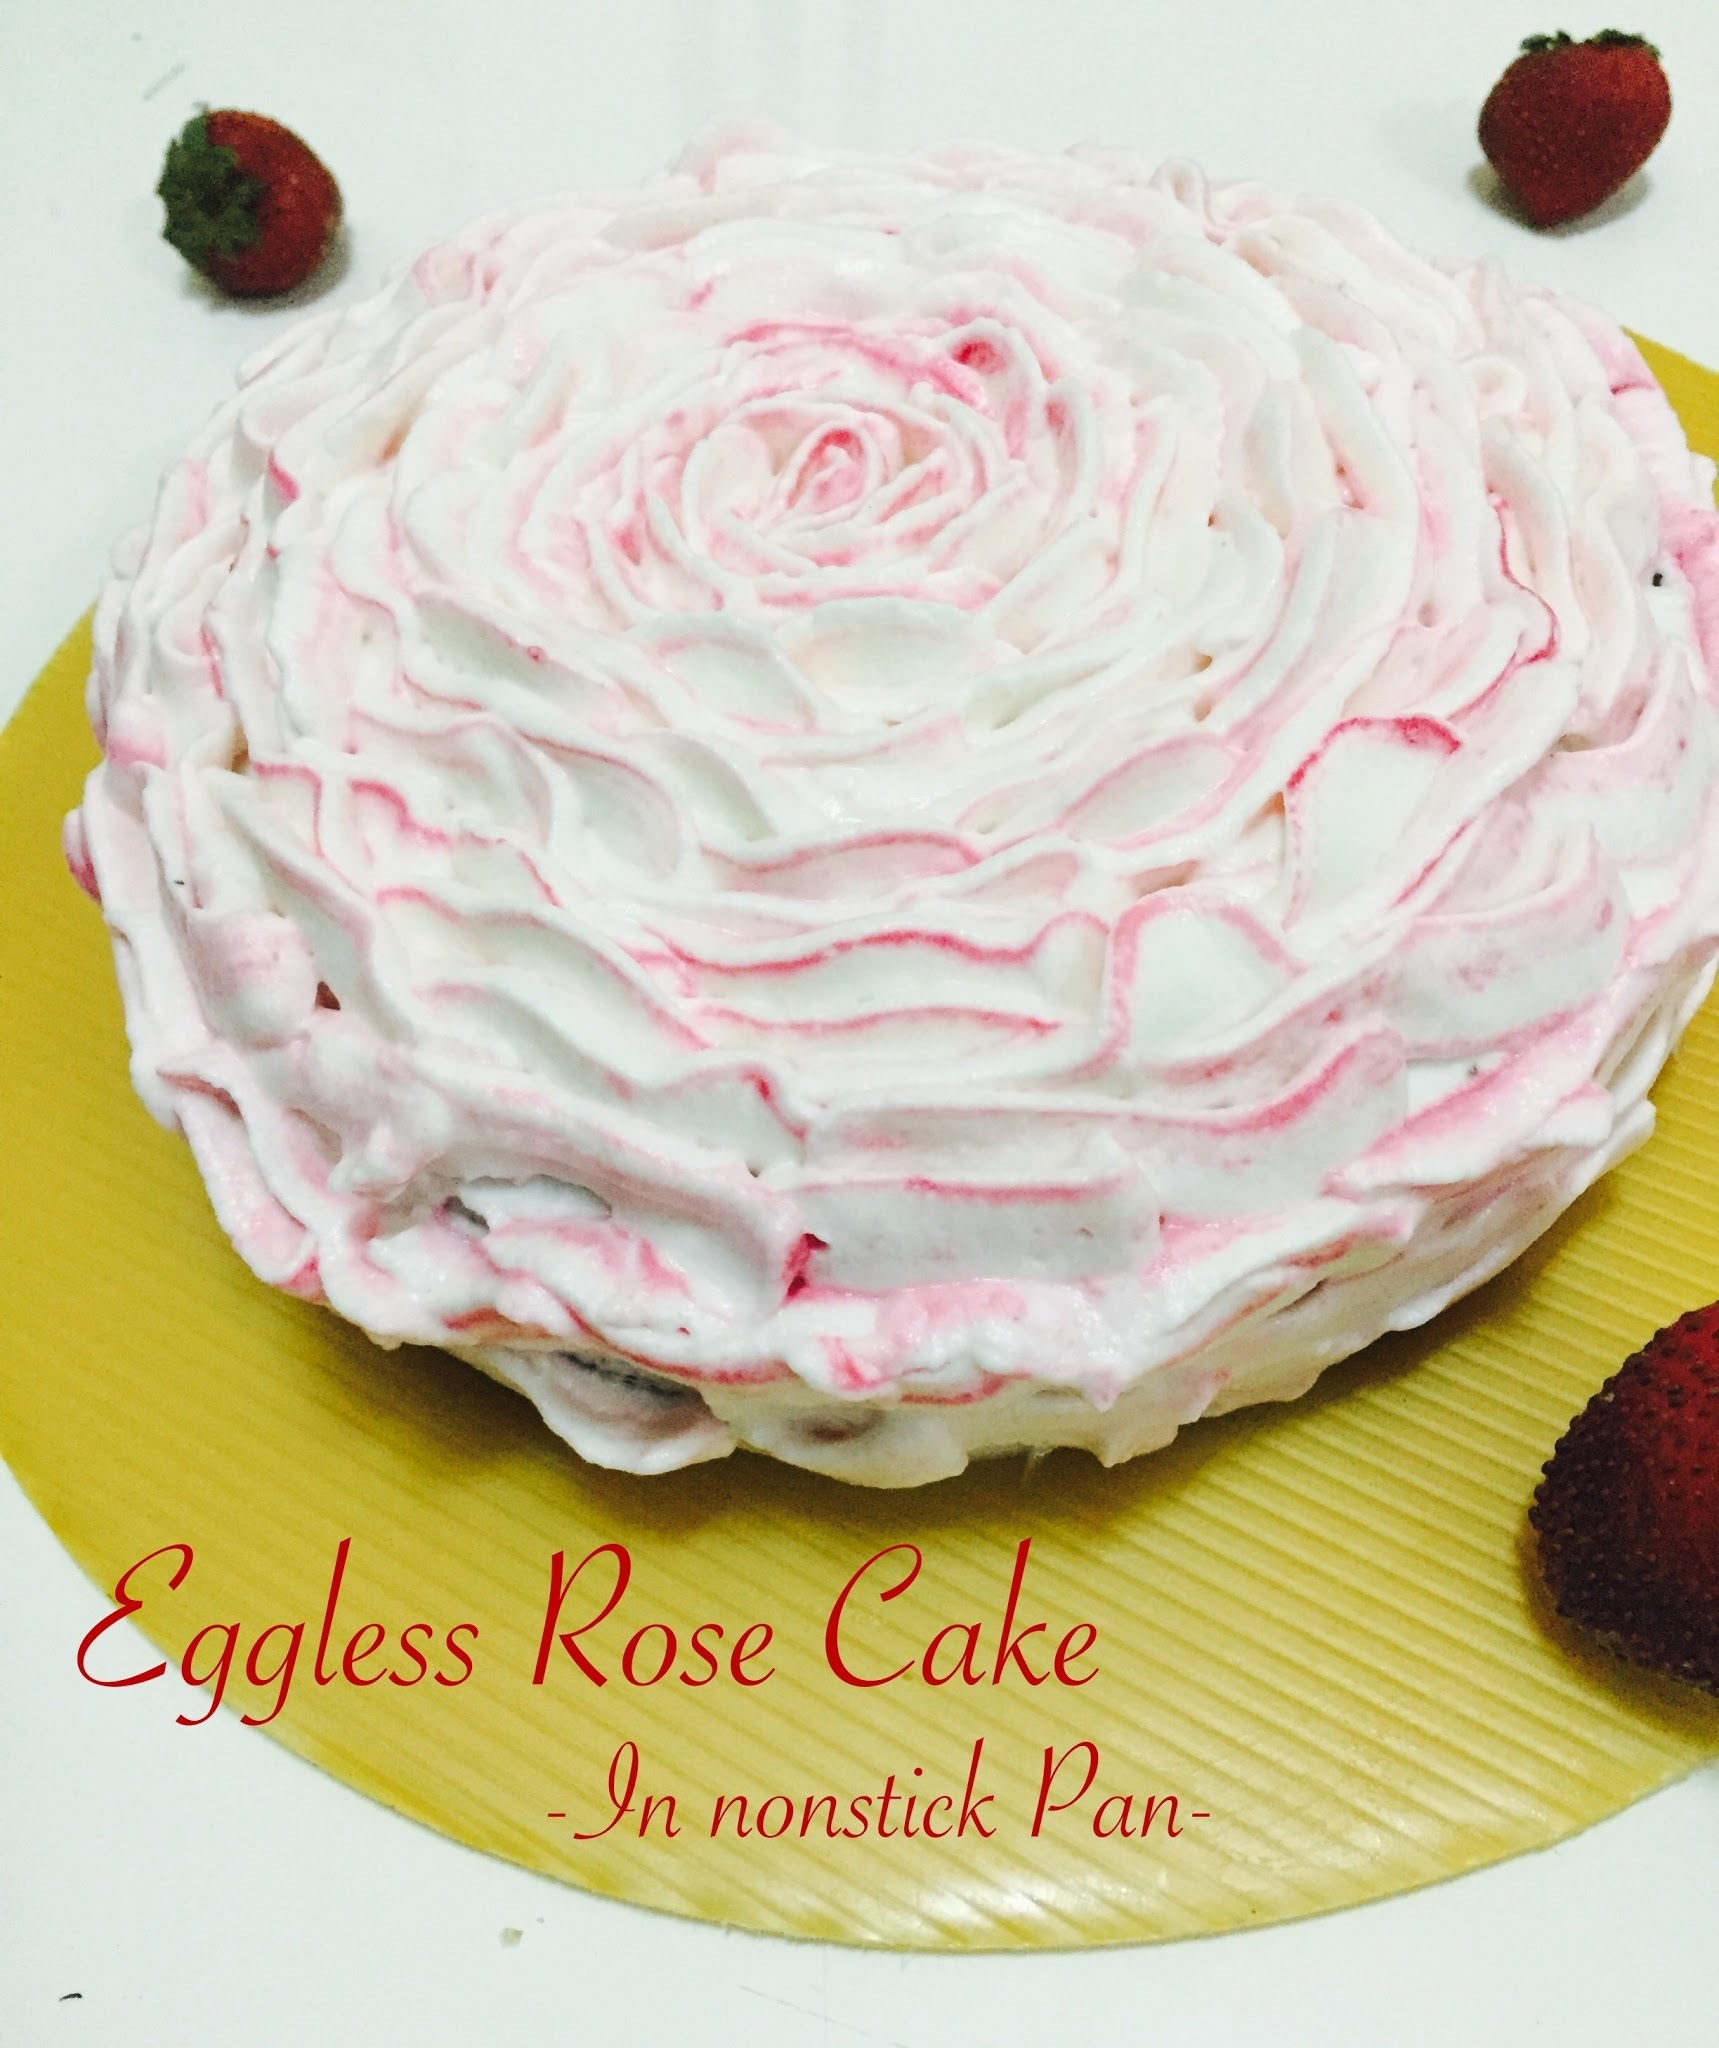 EGG-LESS ROSE CAKE